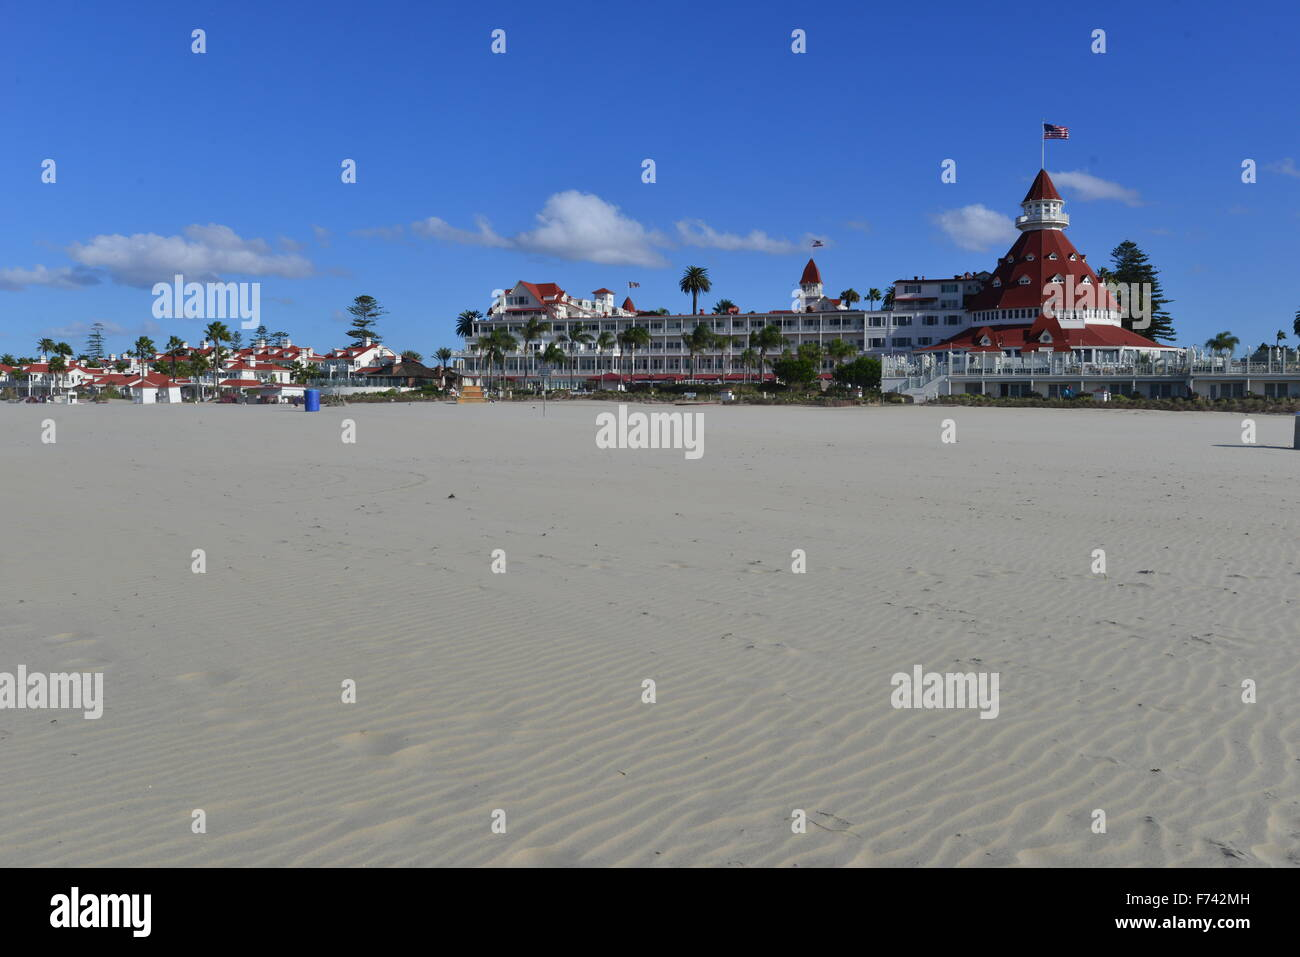 Hotel del Coronado  beach front hotel in the city of Coronado, Stock Photo